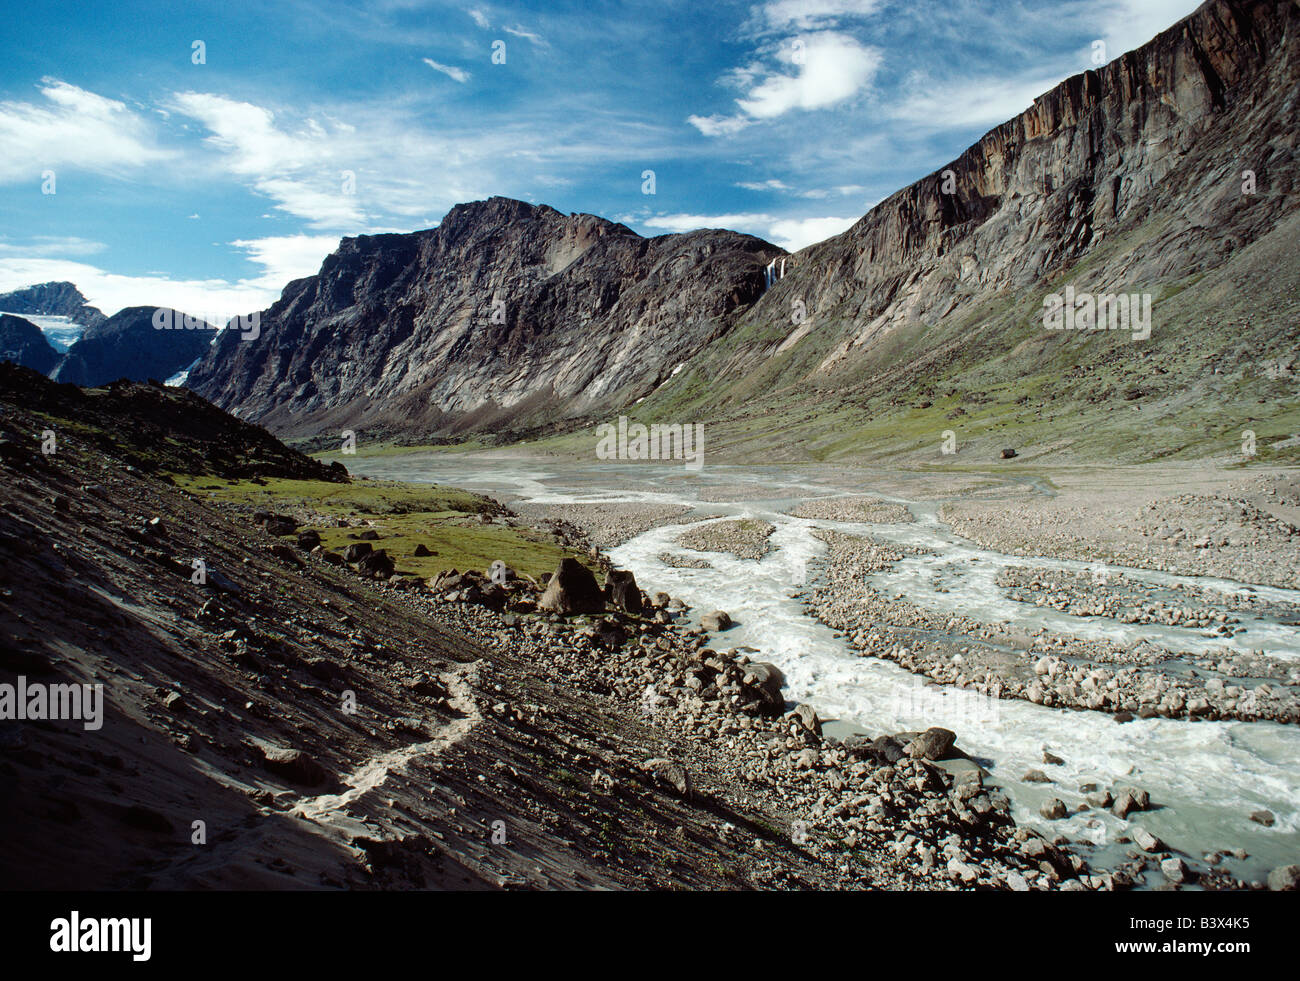 Windy Pass and the Weasel River, Auyuittuq National Park, Baffin Island, Nunavut, Canada - Stock Image